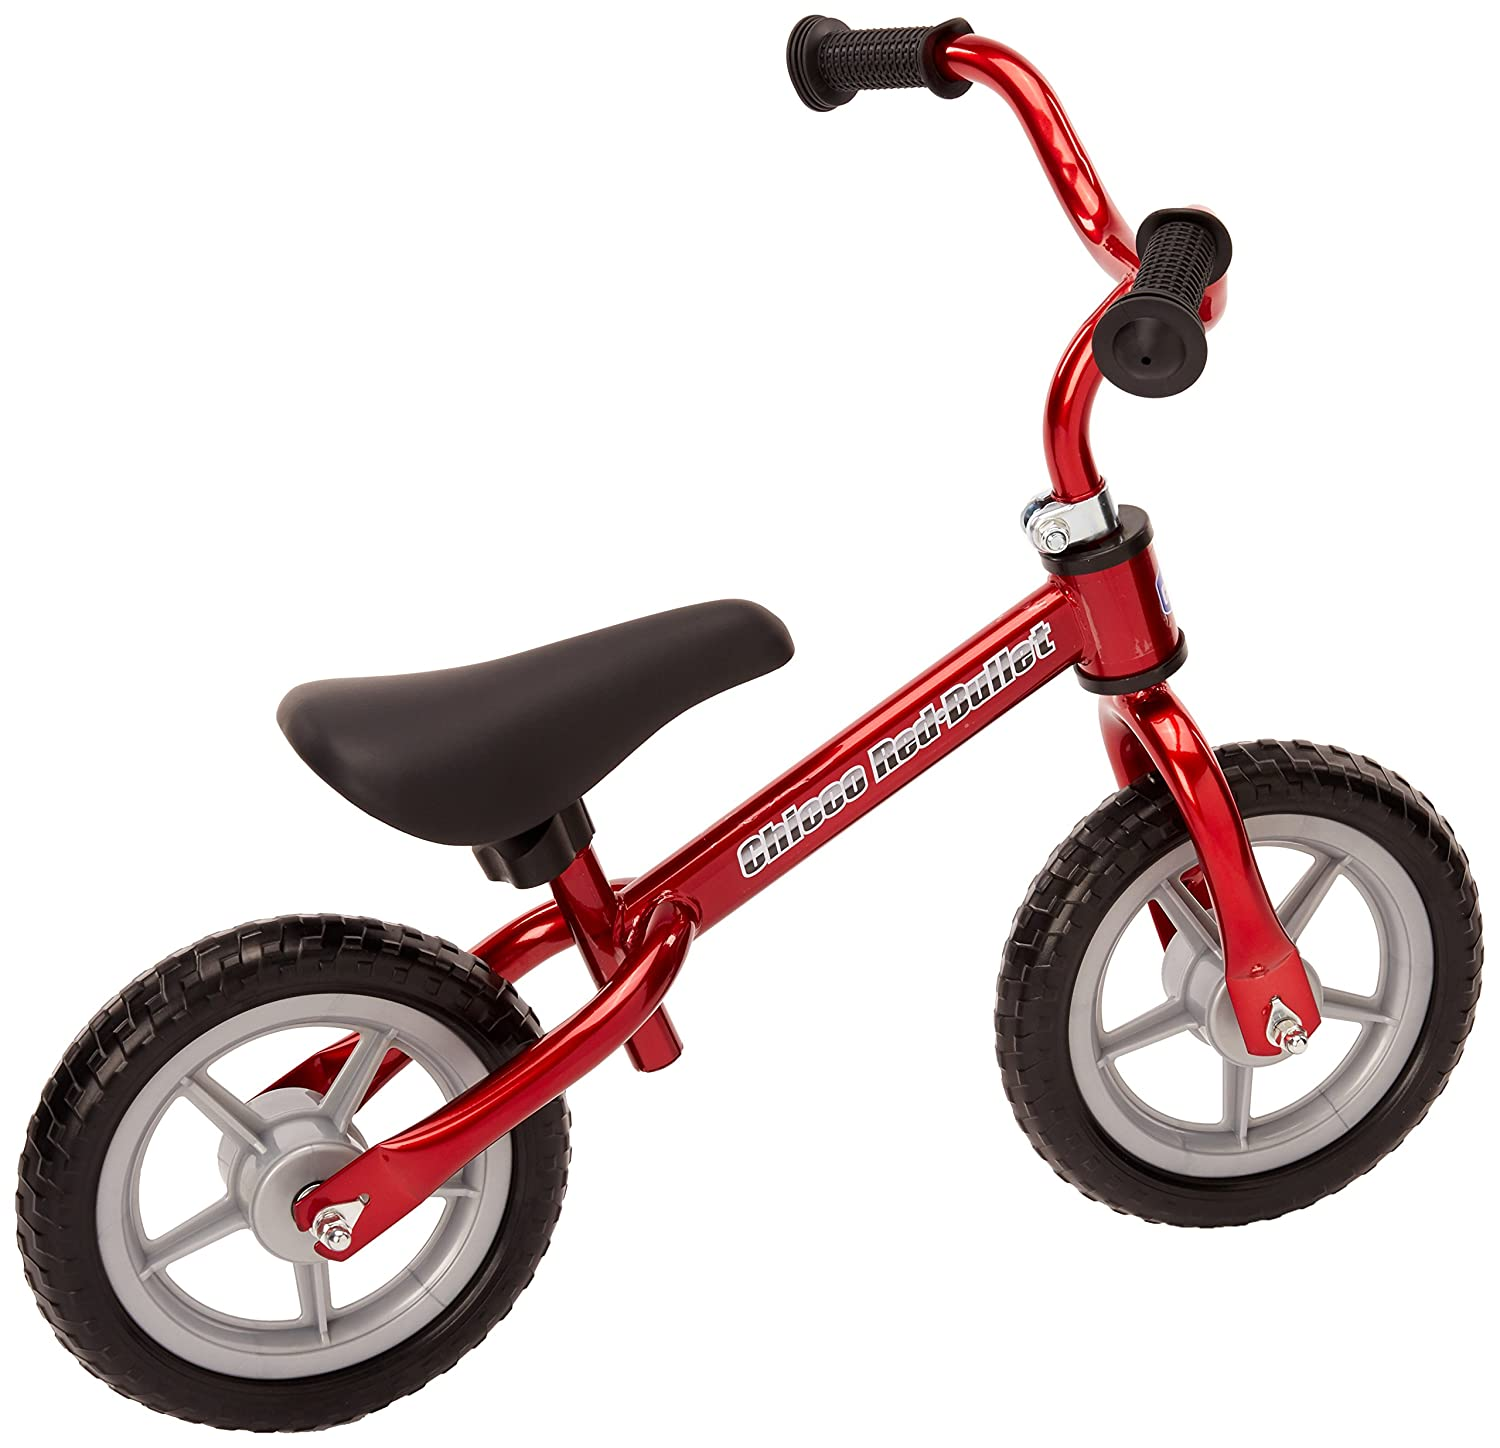 Chicco Red Bullet Balance Training Bike Sports Outdoors